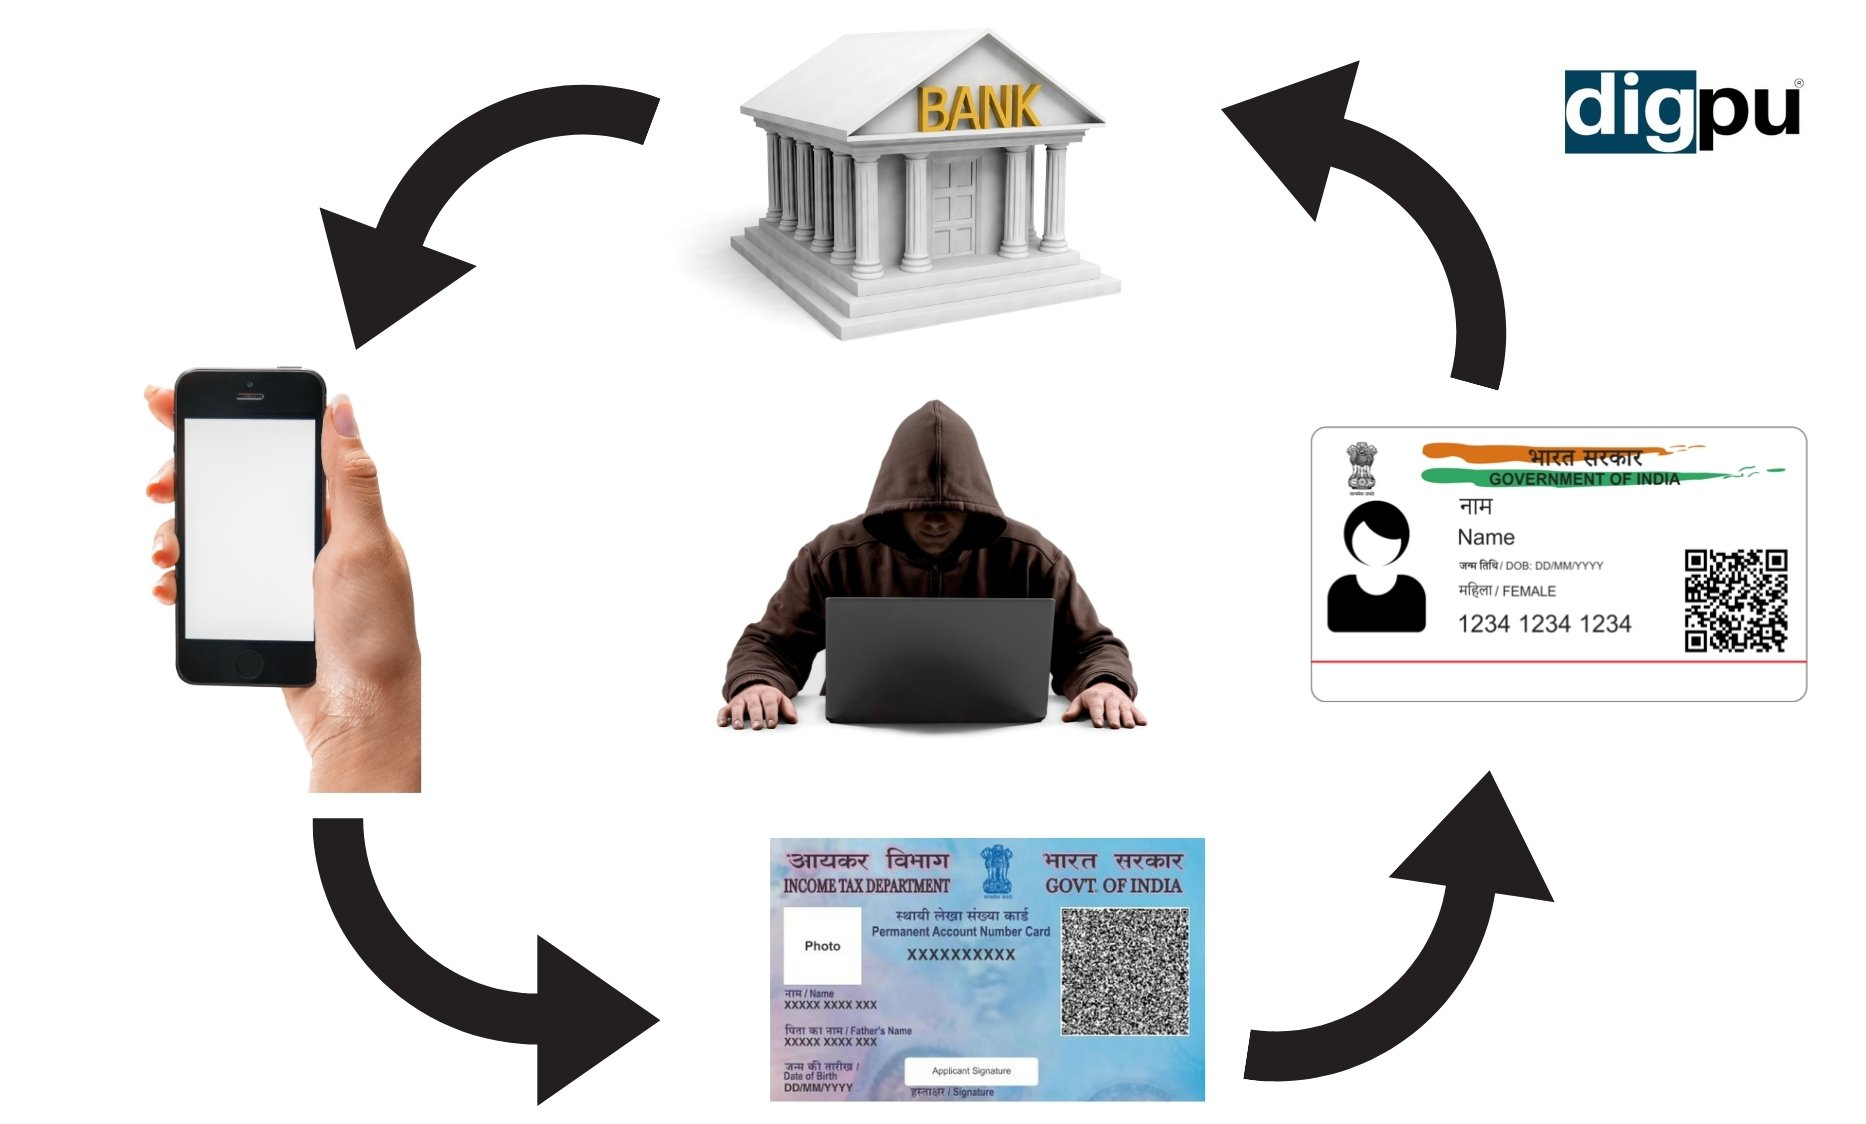 Linking with Aadhar & Pan Card with Bank